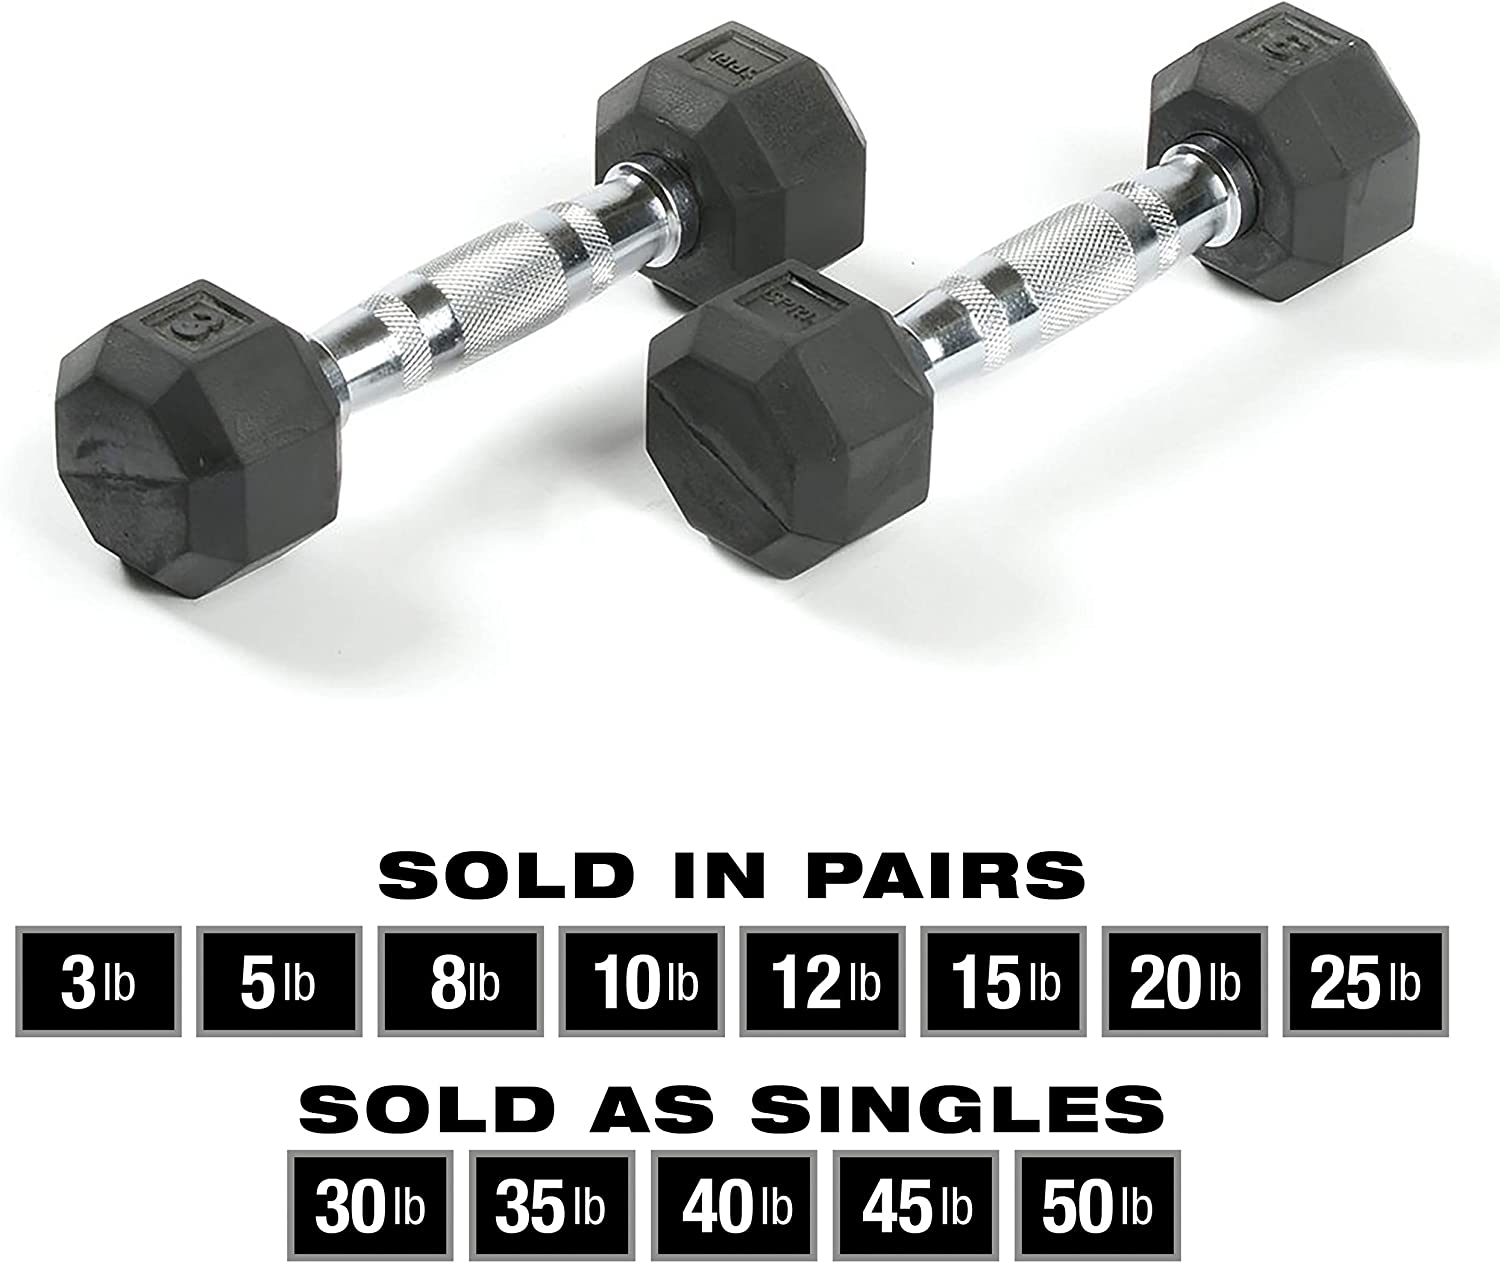 SPRI Dumbbells Hand Weights Deluxe Rubber Encased Chrome Handle All-Purpose Dumbbell Available in 3, 5, 8, 10, 12, 15, 20, 25, 30, 35, 30, 45, 50 Pounds